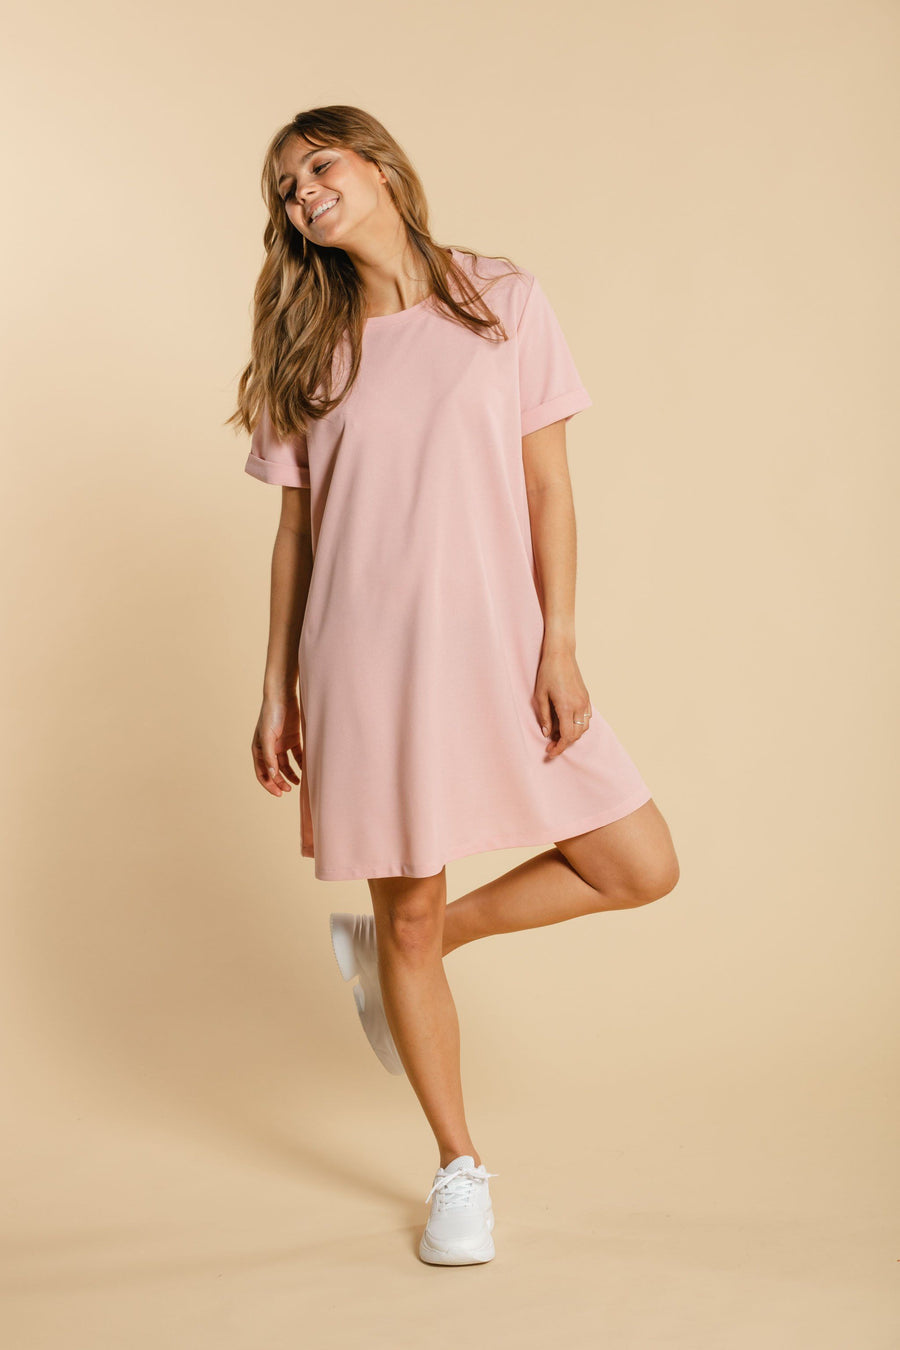 Robe T-shirt rose